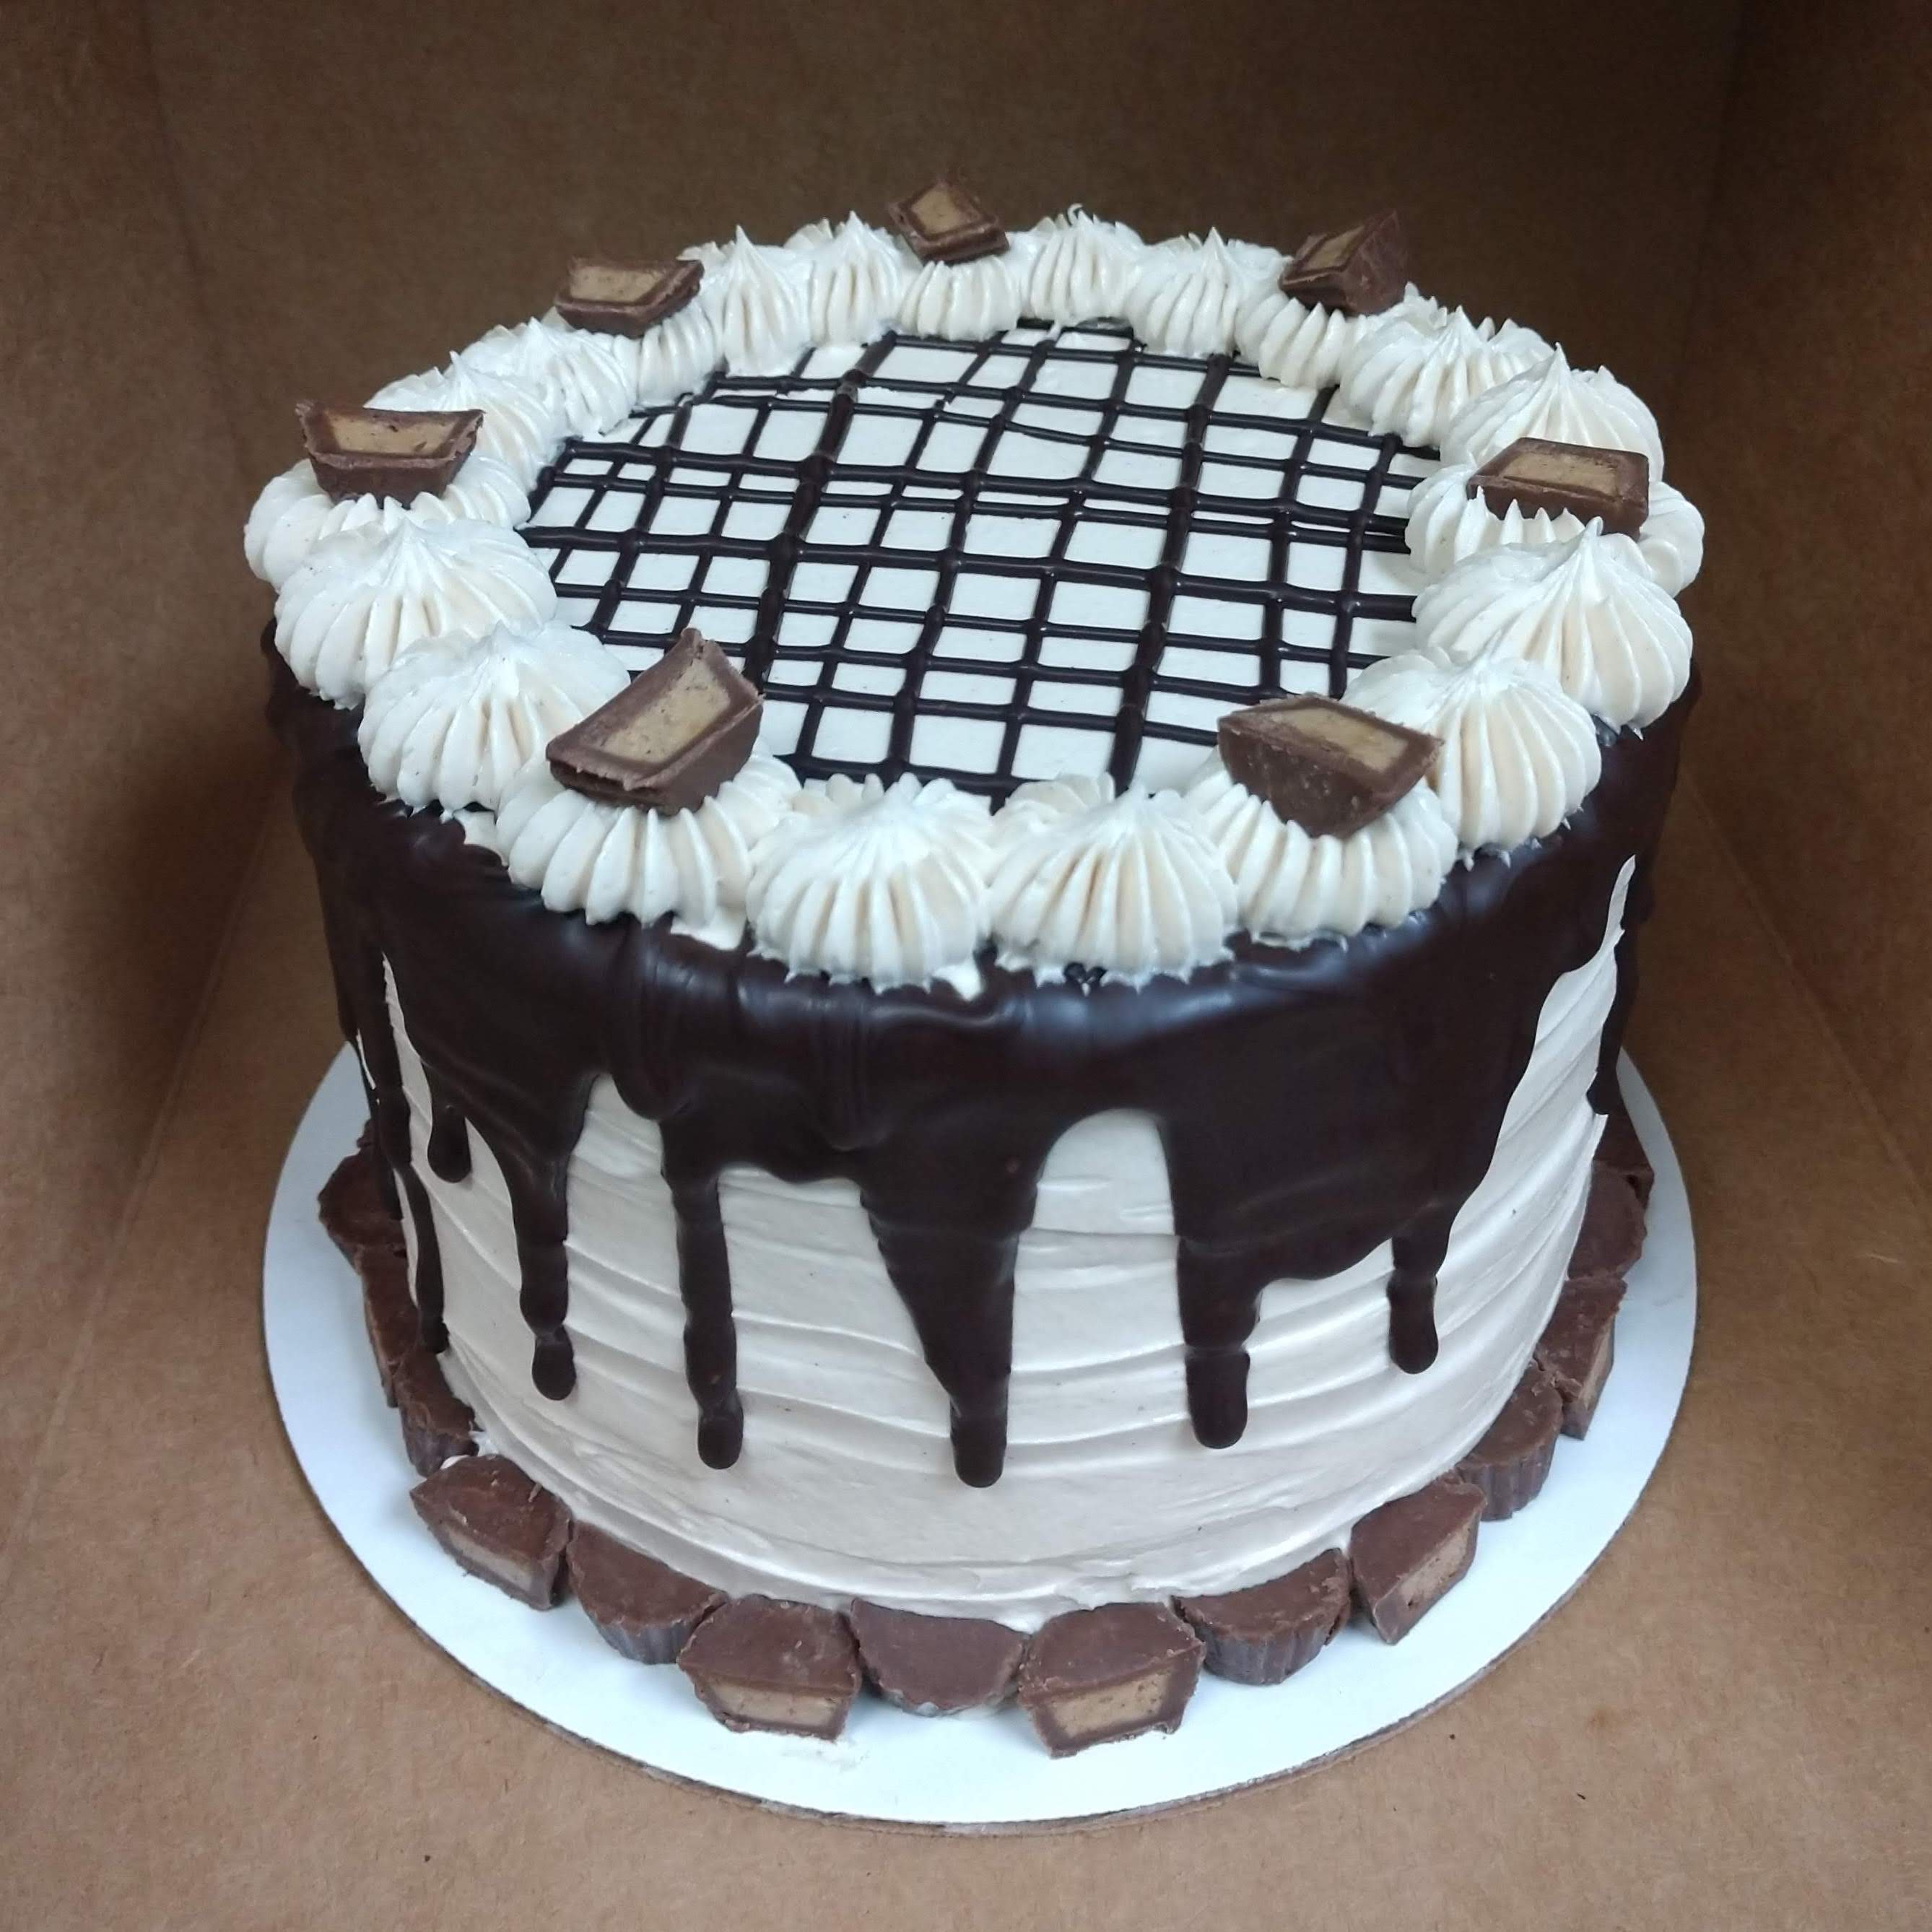 6in cake with vanilla buttercream, choc. drizzle and reese's cups